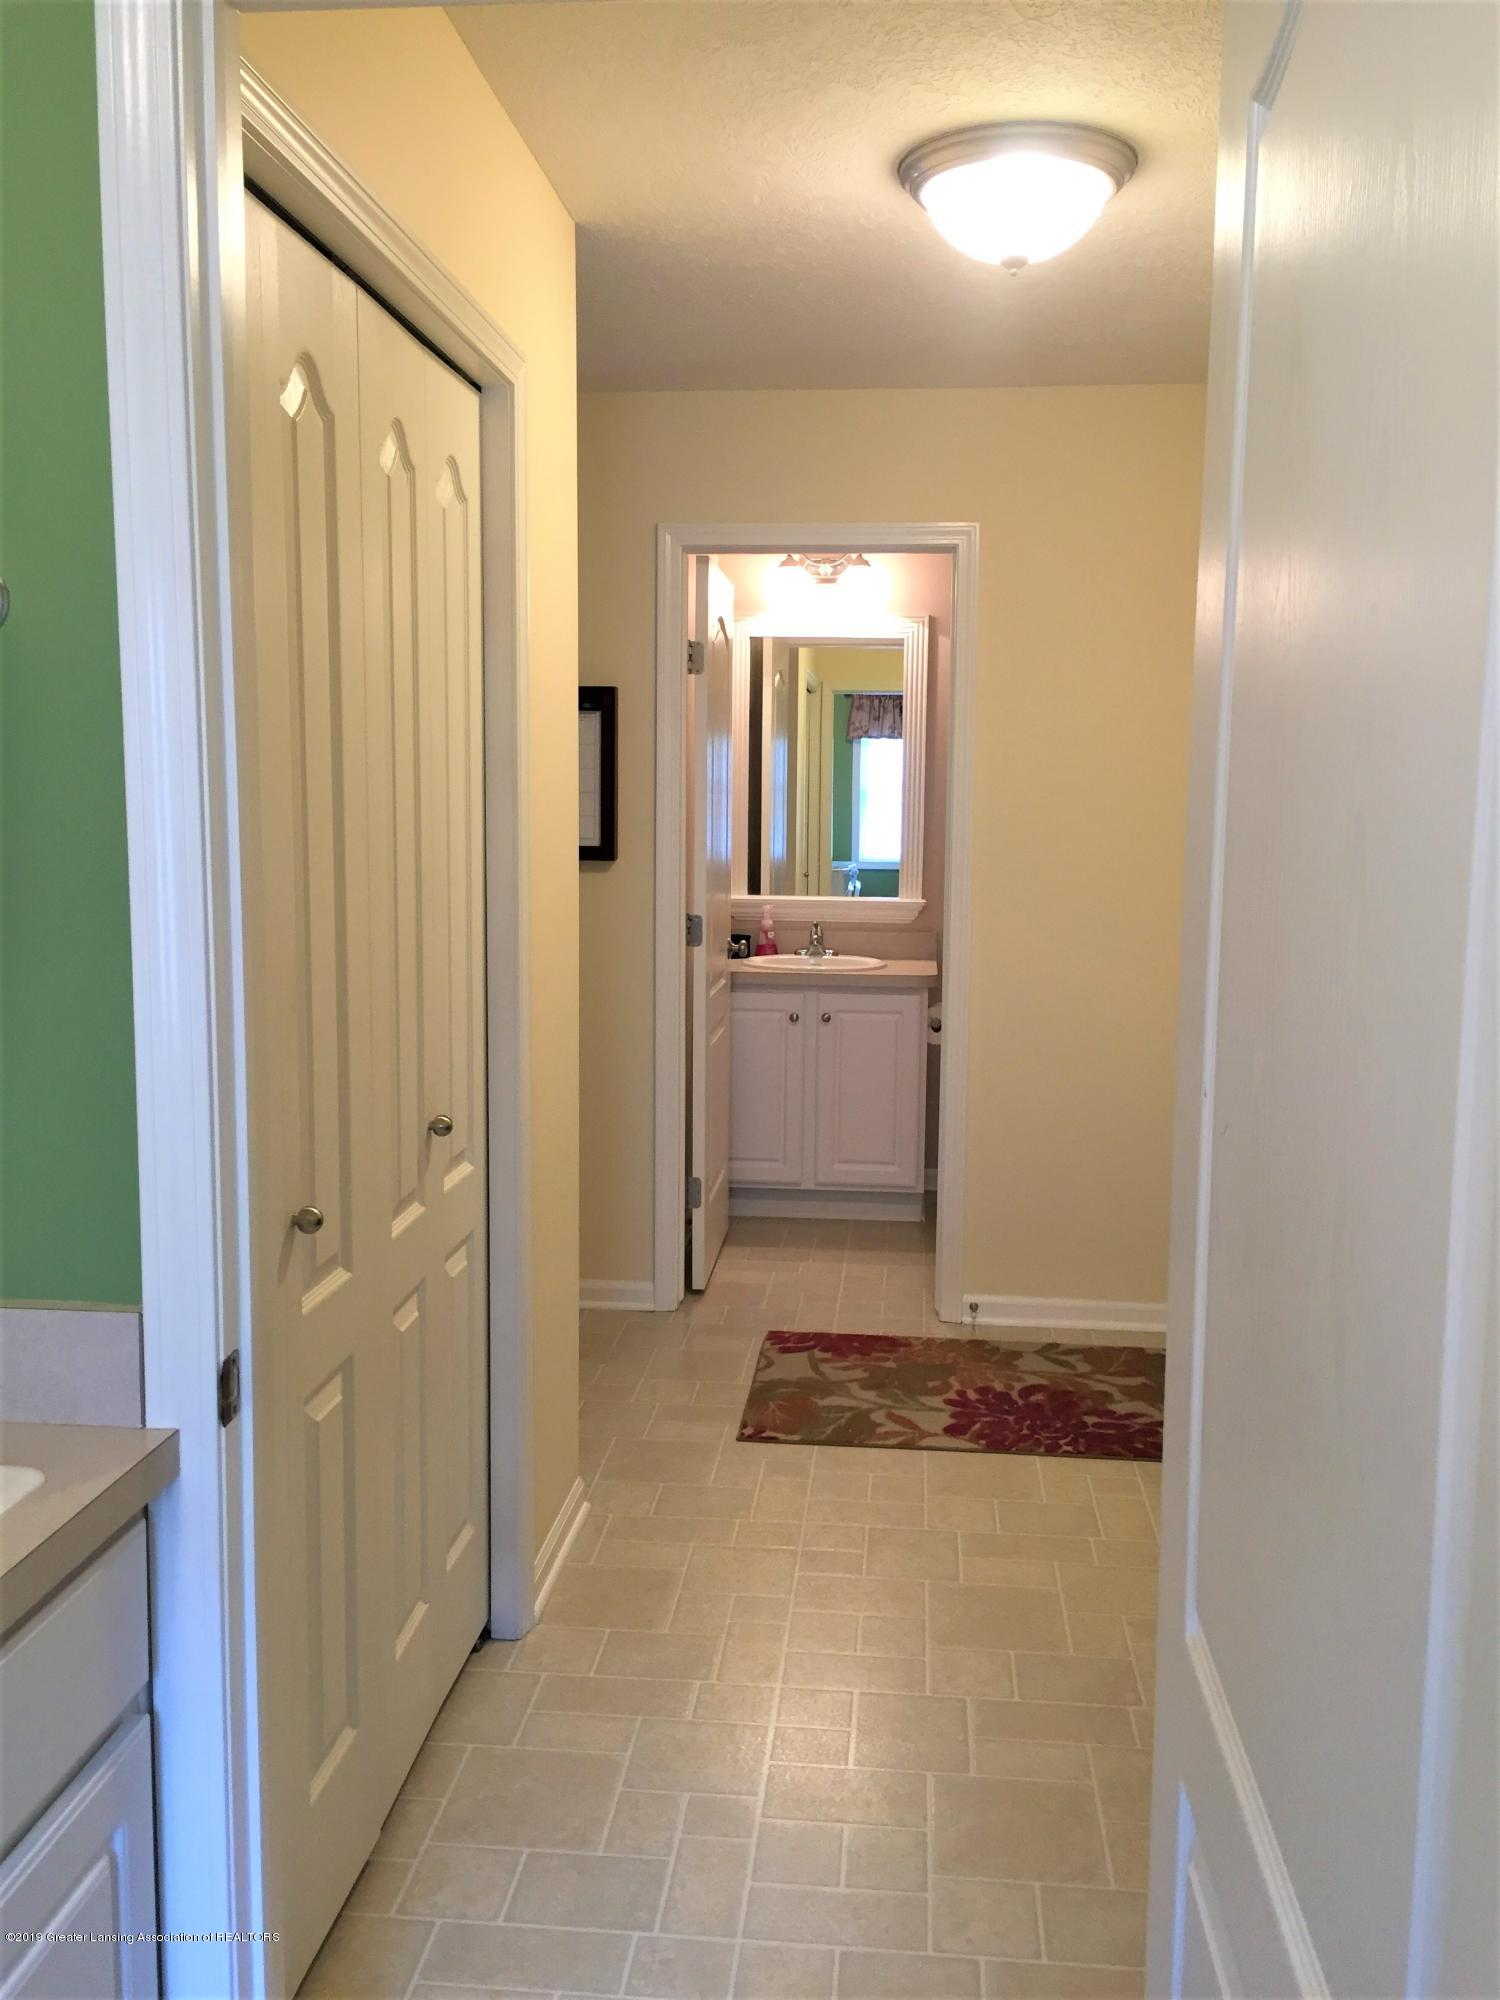 8617 Wheatdale Dr - View of Mudroom from Laundry Room - 15